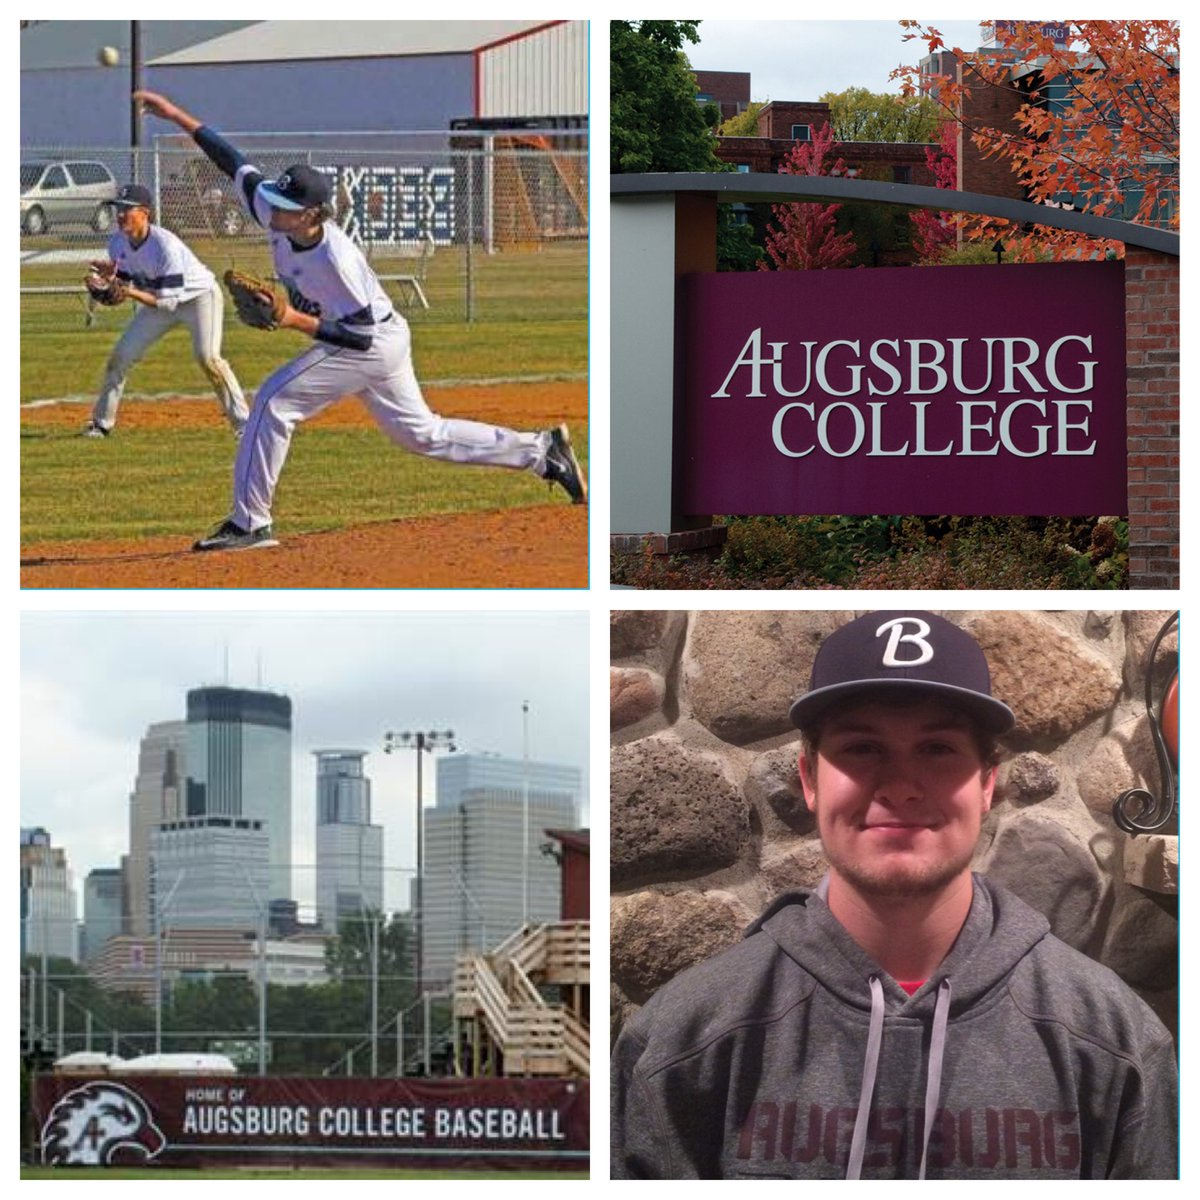 Welcome Kendal Hanson from Becker to the Augsburg College Baseball Family!! #FER #auggiepride https://t.co/YAND59ZA8u